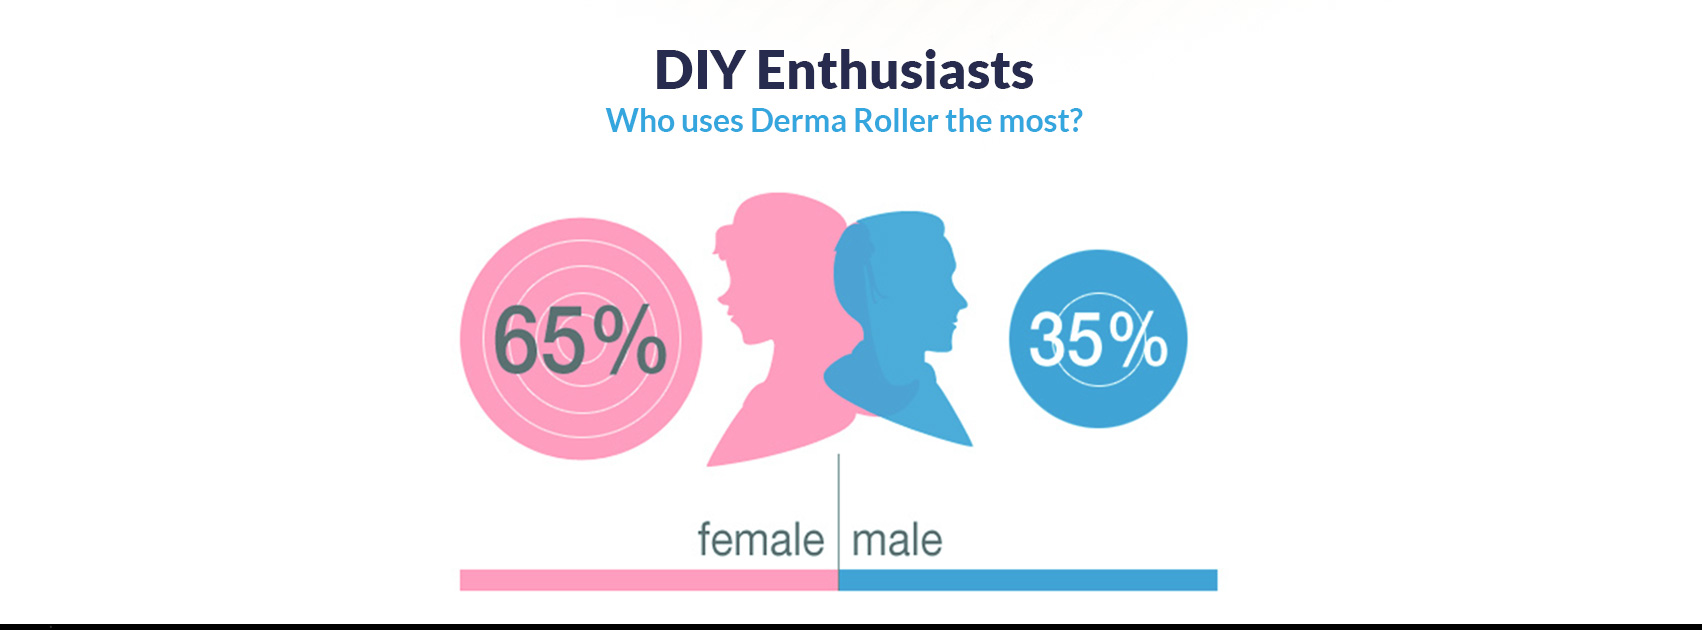 Everything you need to know - Derma Roller